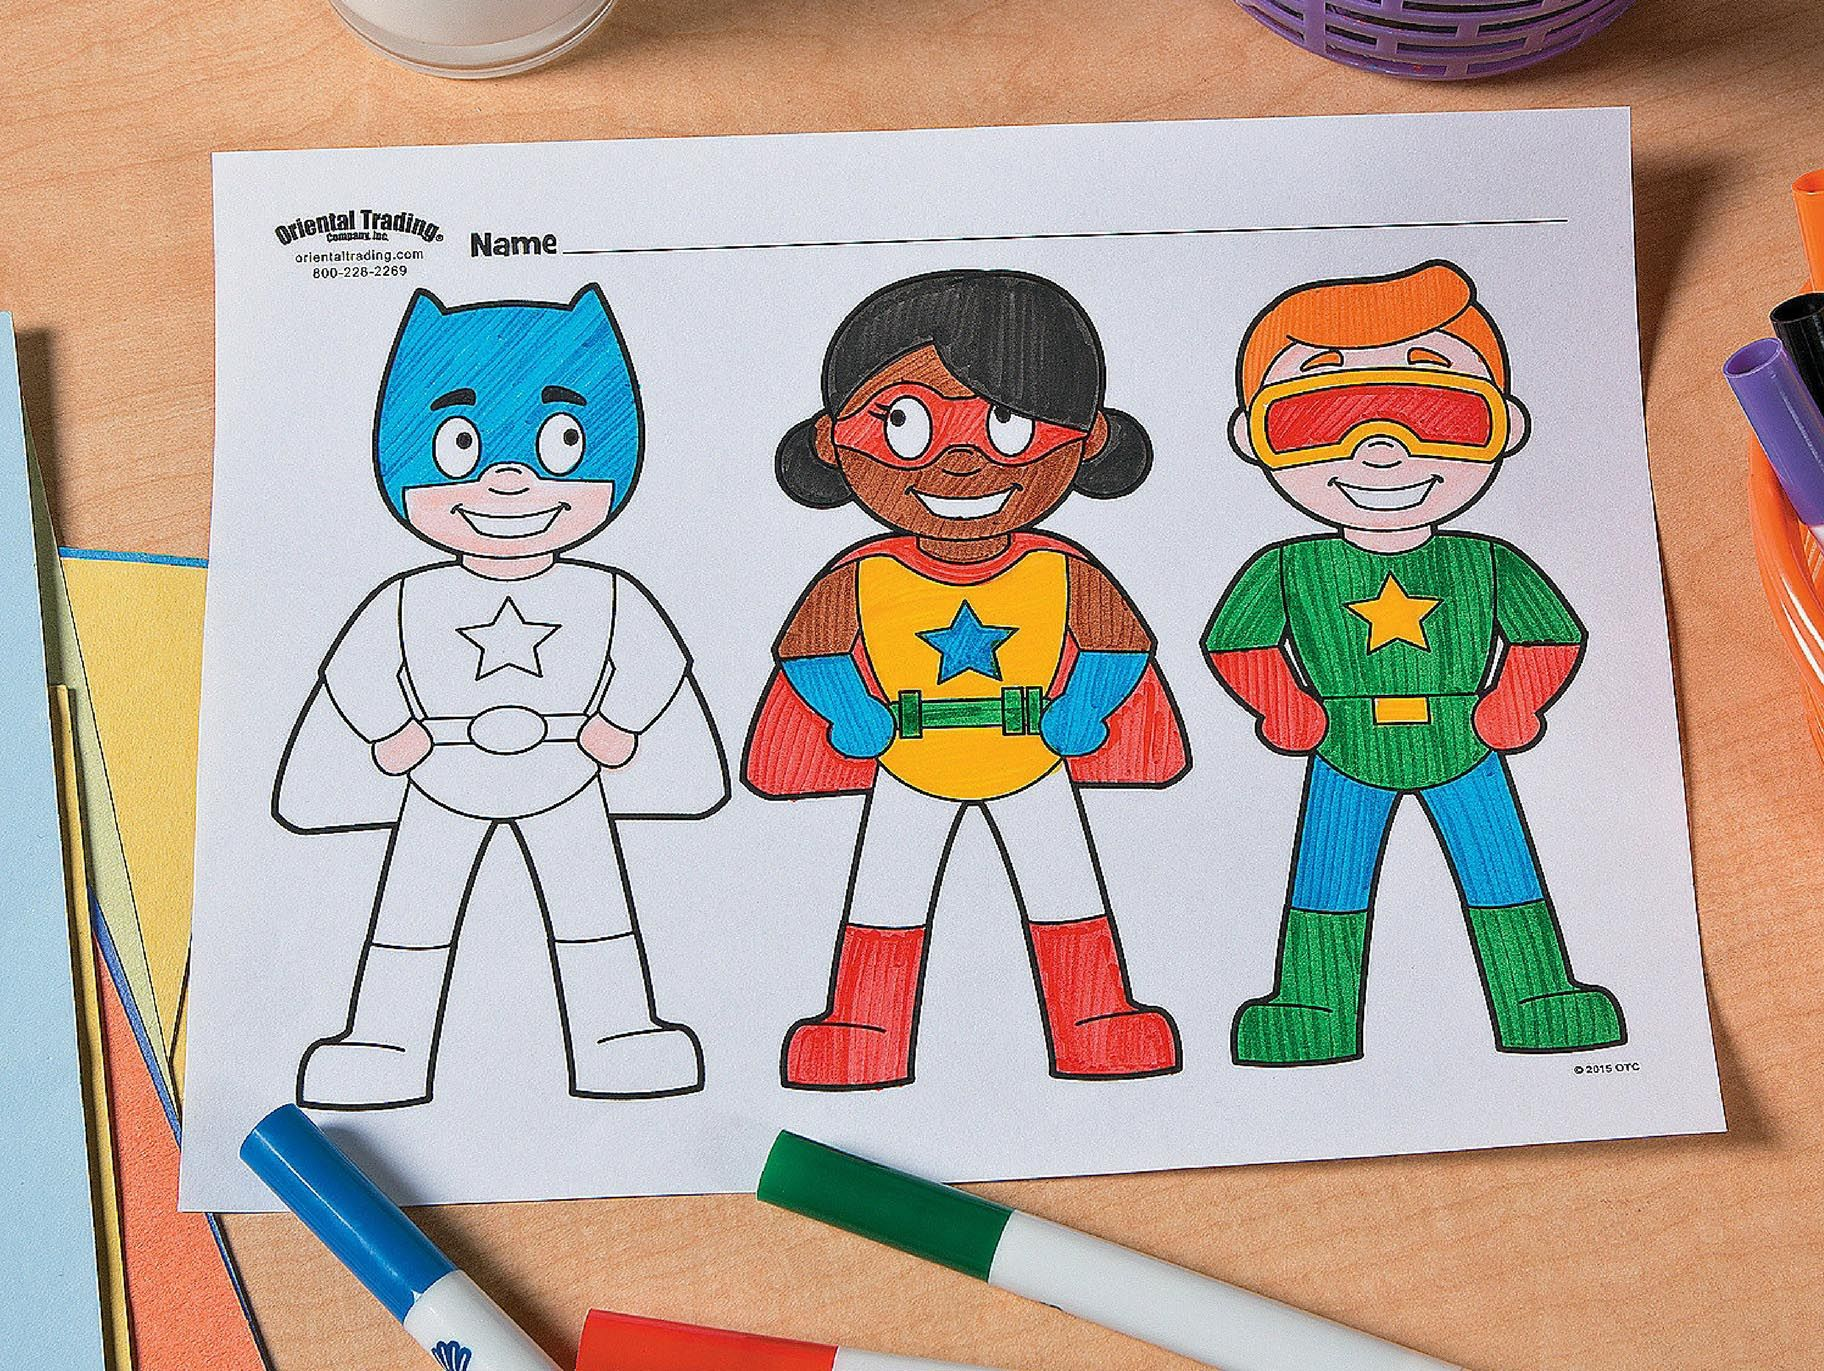 Superhero Free Printable Coloring Page Idea Superhero Coloring Free Printable Coloring Pages Wedding Coloring Pages